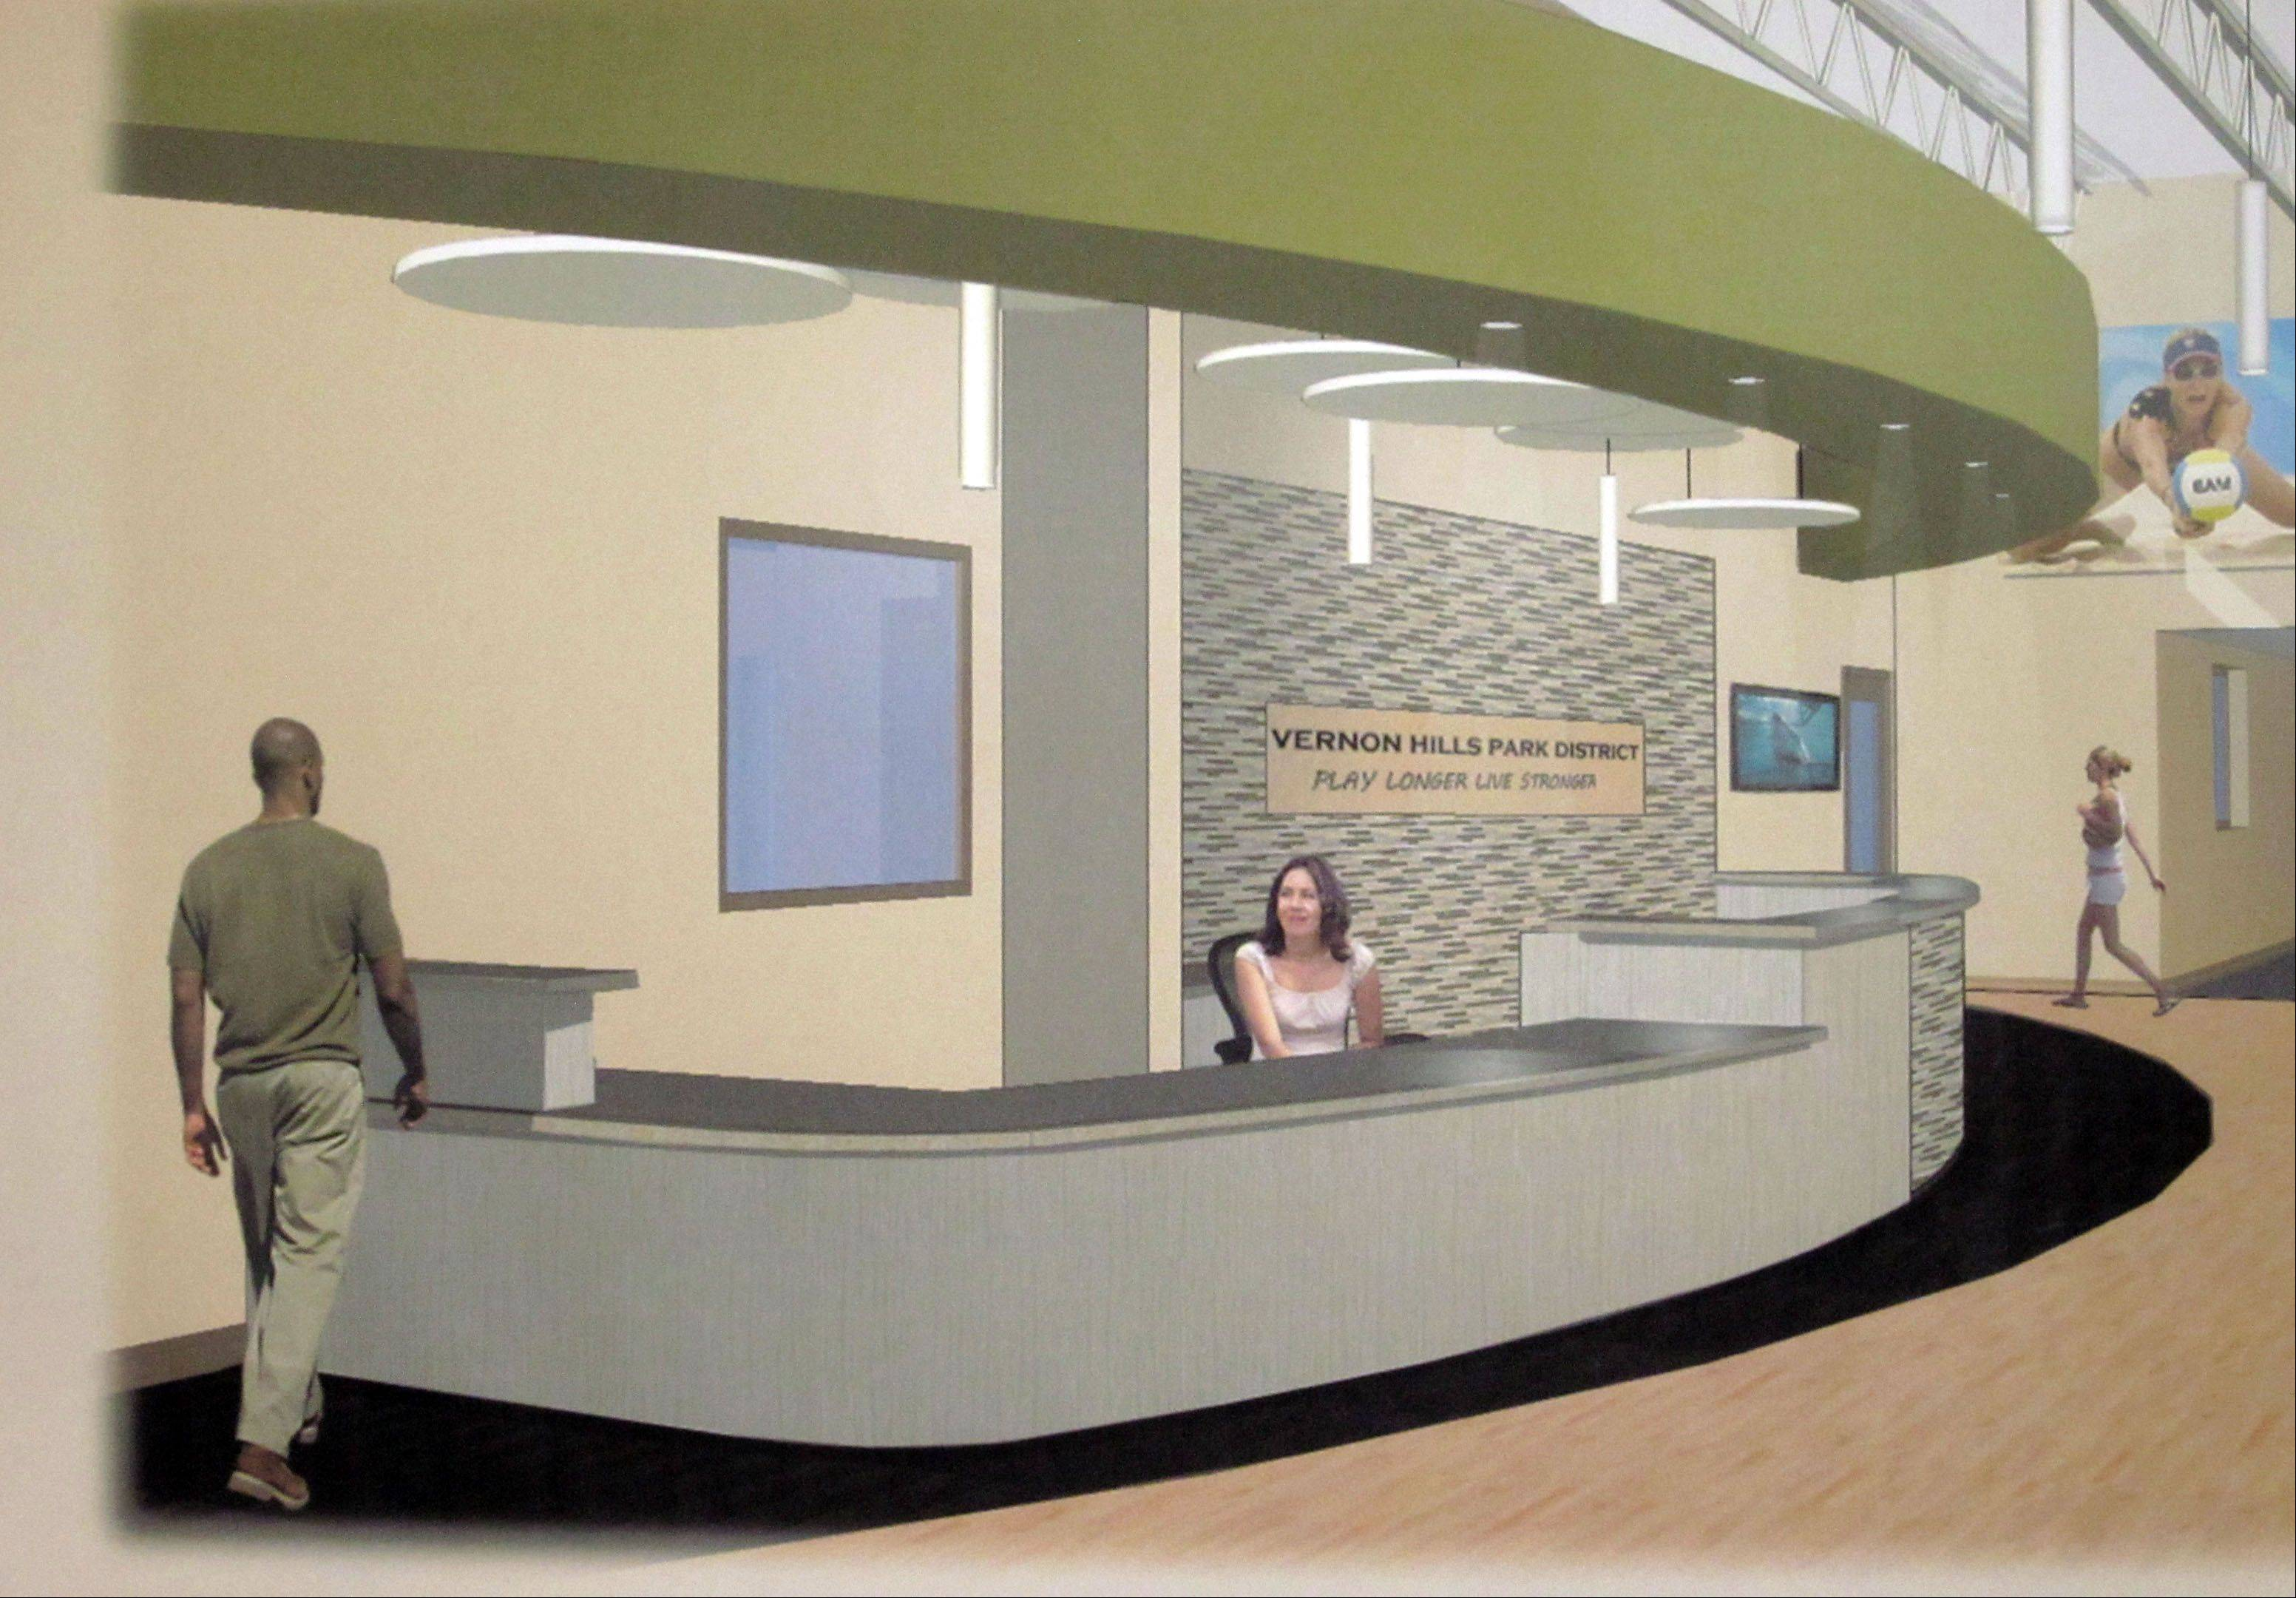 Extensive improvements at the former Central Lake YMCA in Vernon Hills include a new reception area at the entrance, to be relocated from the middle of the building.